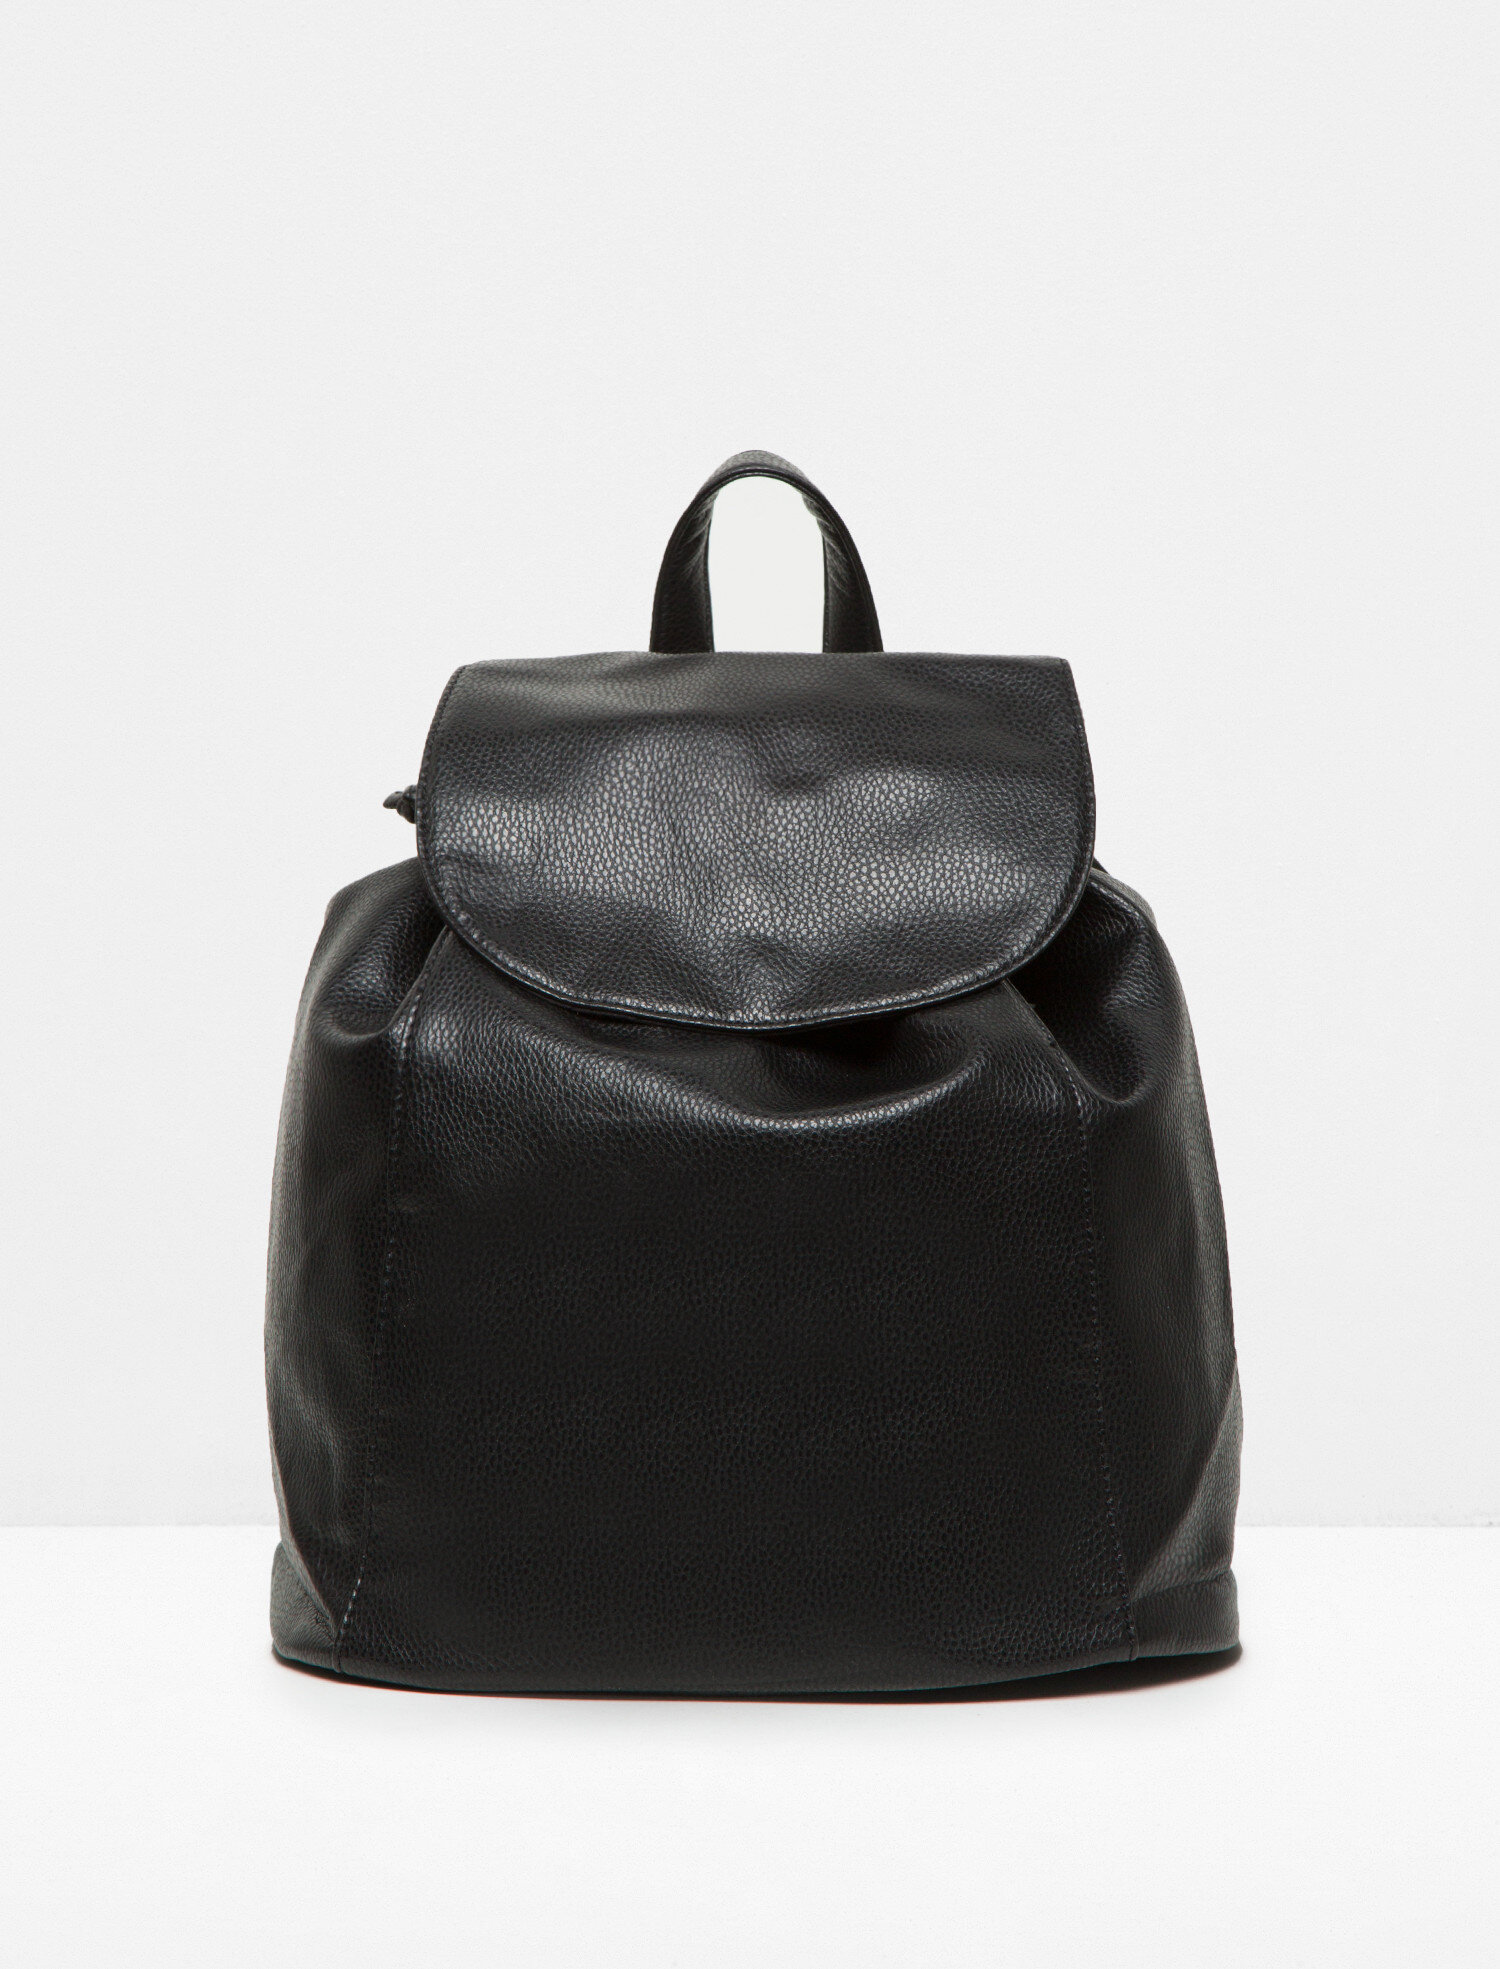 Black Women Leather Look Backpack 6KAK30040AA999M | Koton